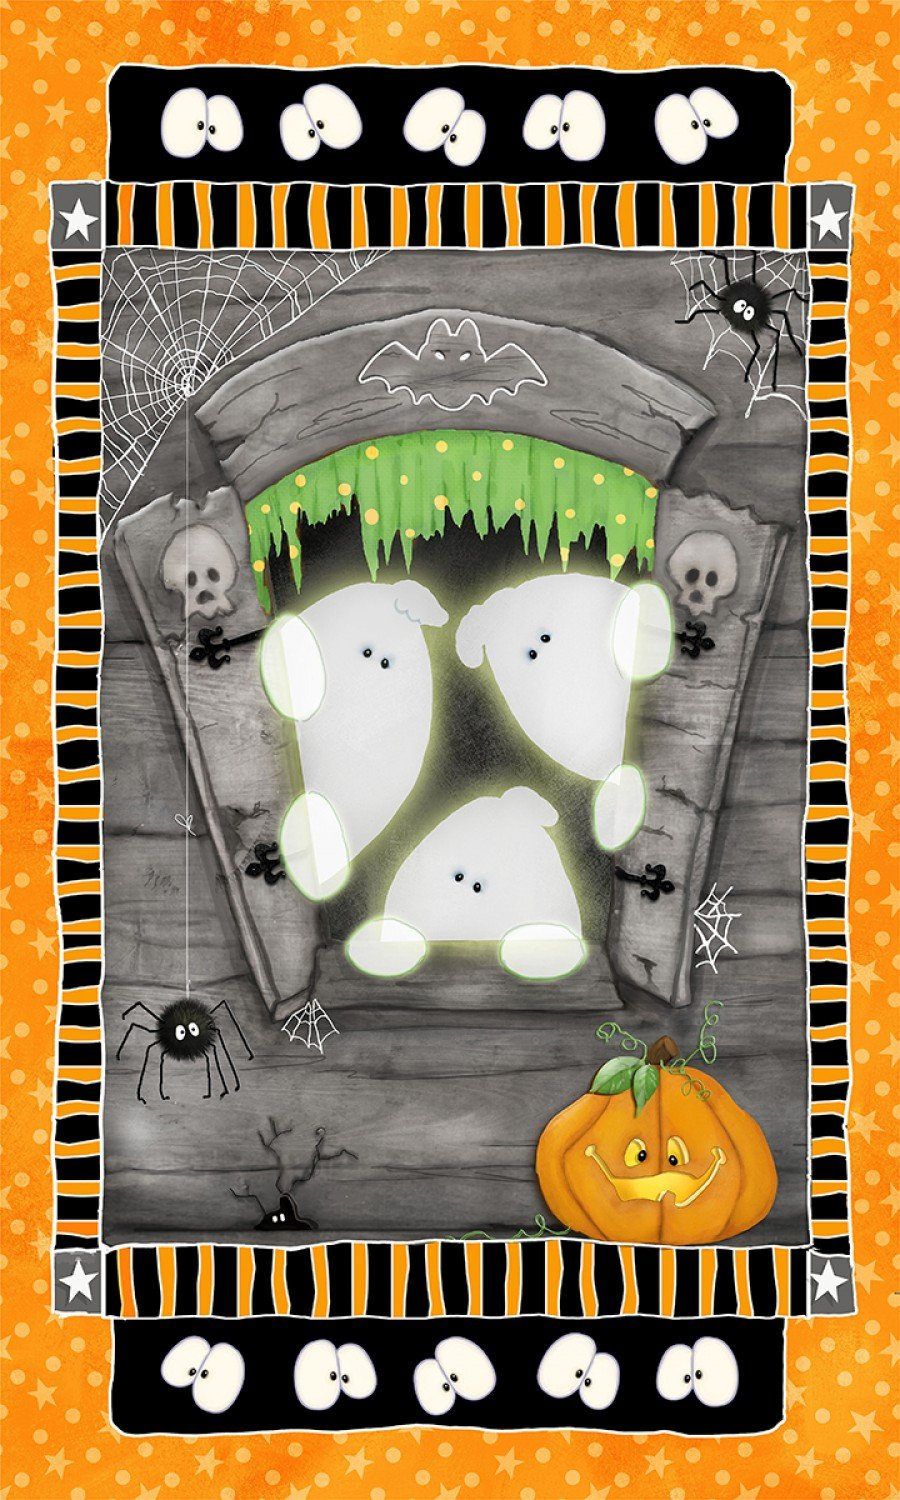 Henry Glass Glow in the Dark Halloween Fabric Panel Chills and Thrills by Shelly Comiskey